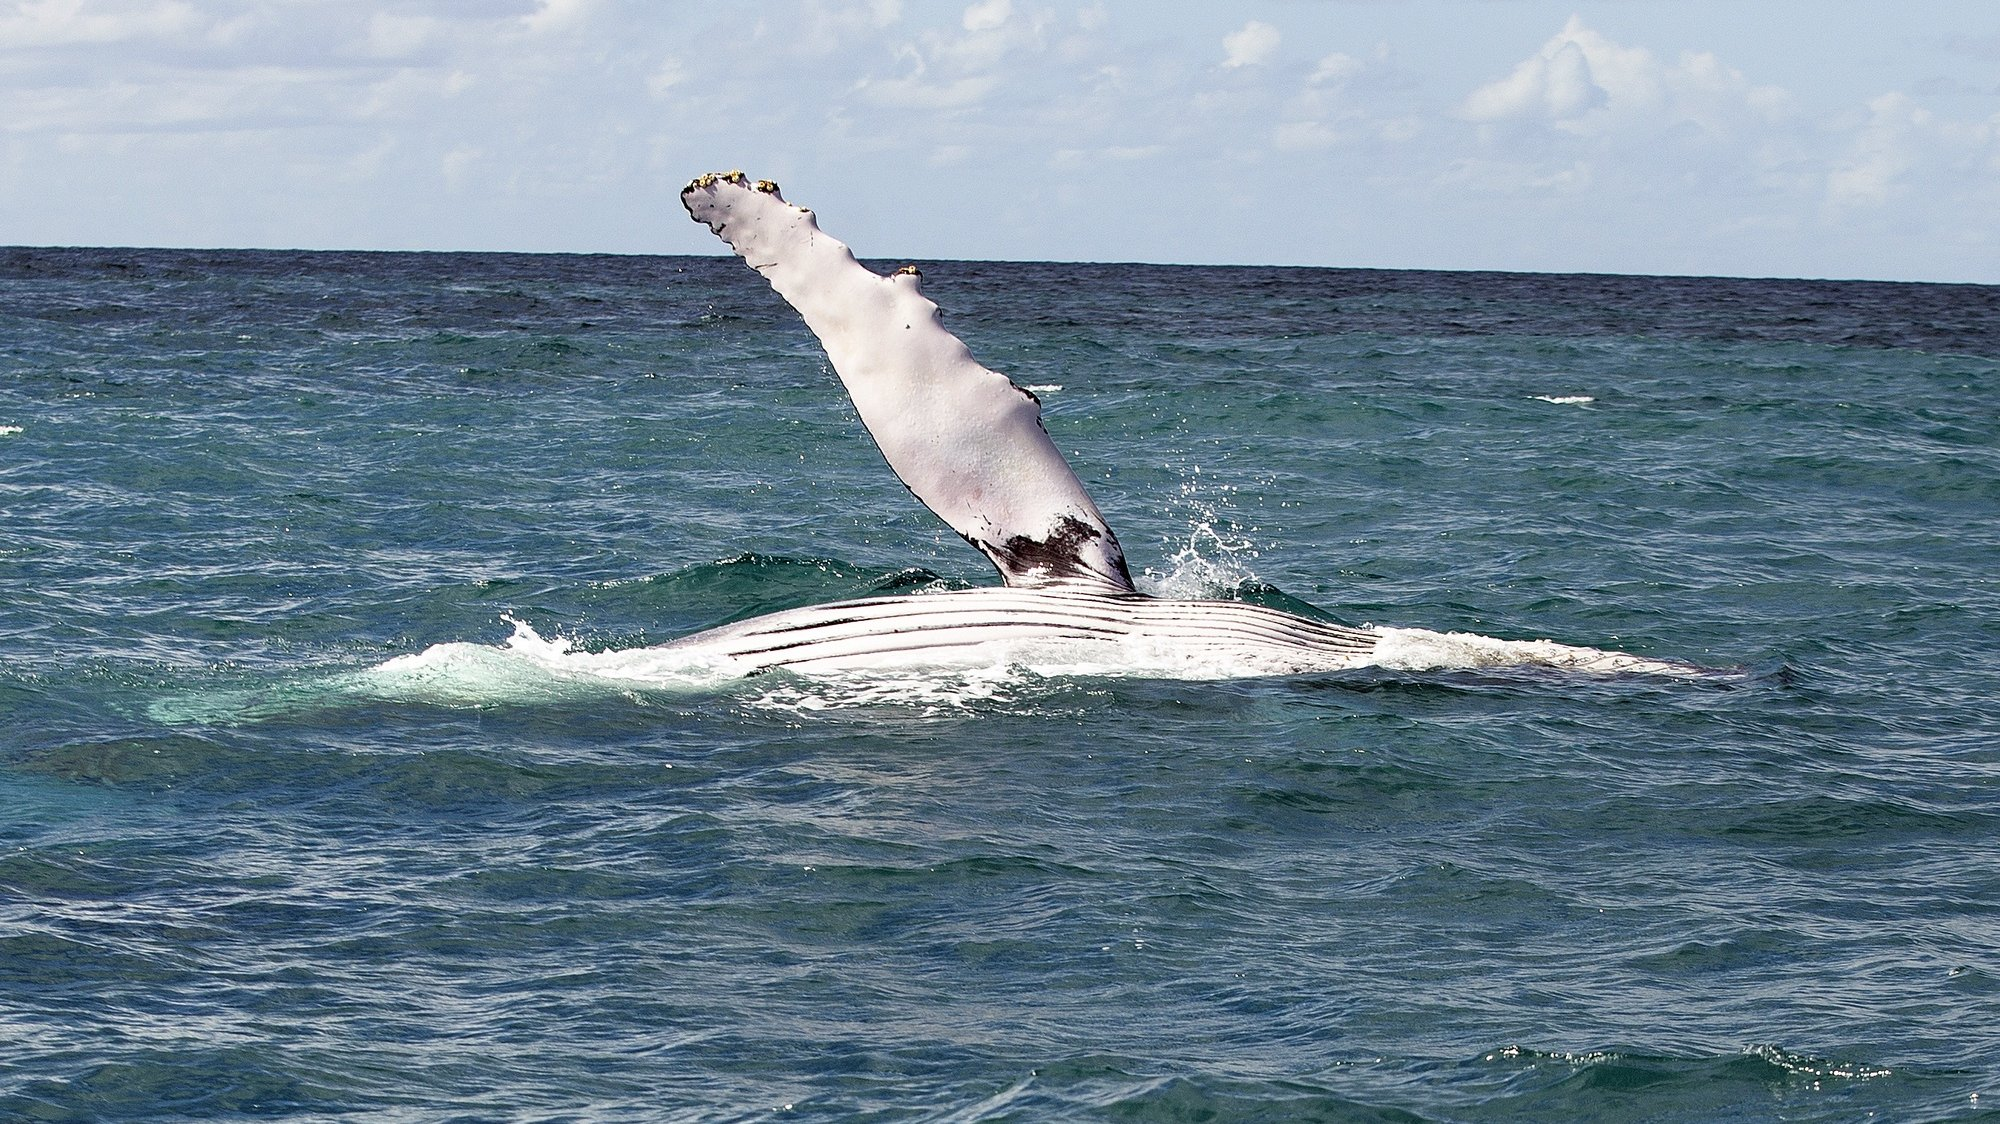 epa06920617 A humpback whale jumps out to sea at the Abrolhos archipelago, located on the southern coast of the state of Bahia, Brazil, 25 July 2018 (issued 31 July 2018). About 20,000 humpback whales travel between July and November to the temperate and clear waters of the Brazilian coast, specifically the Abrolhos archipelago, the largest reproductive cradle at the South Atlantic Ocean and where cetaceans attracts thousands of tourists every year.  EPA/JOEDSON ALVES